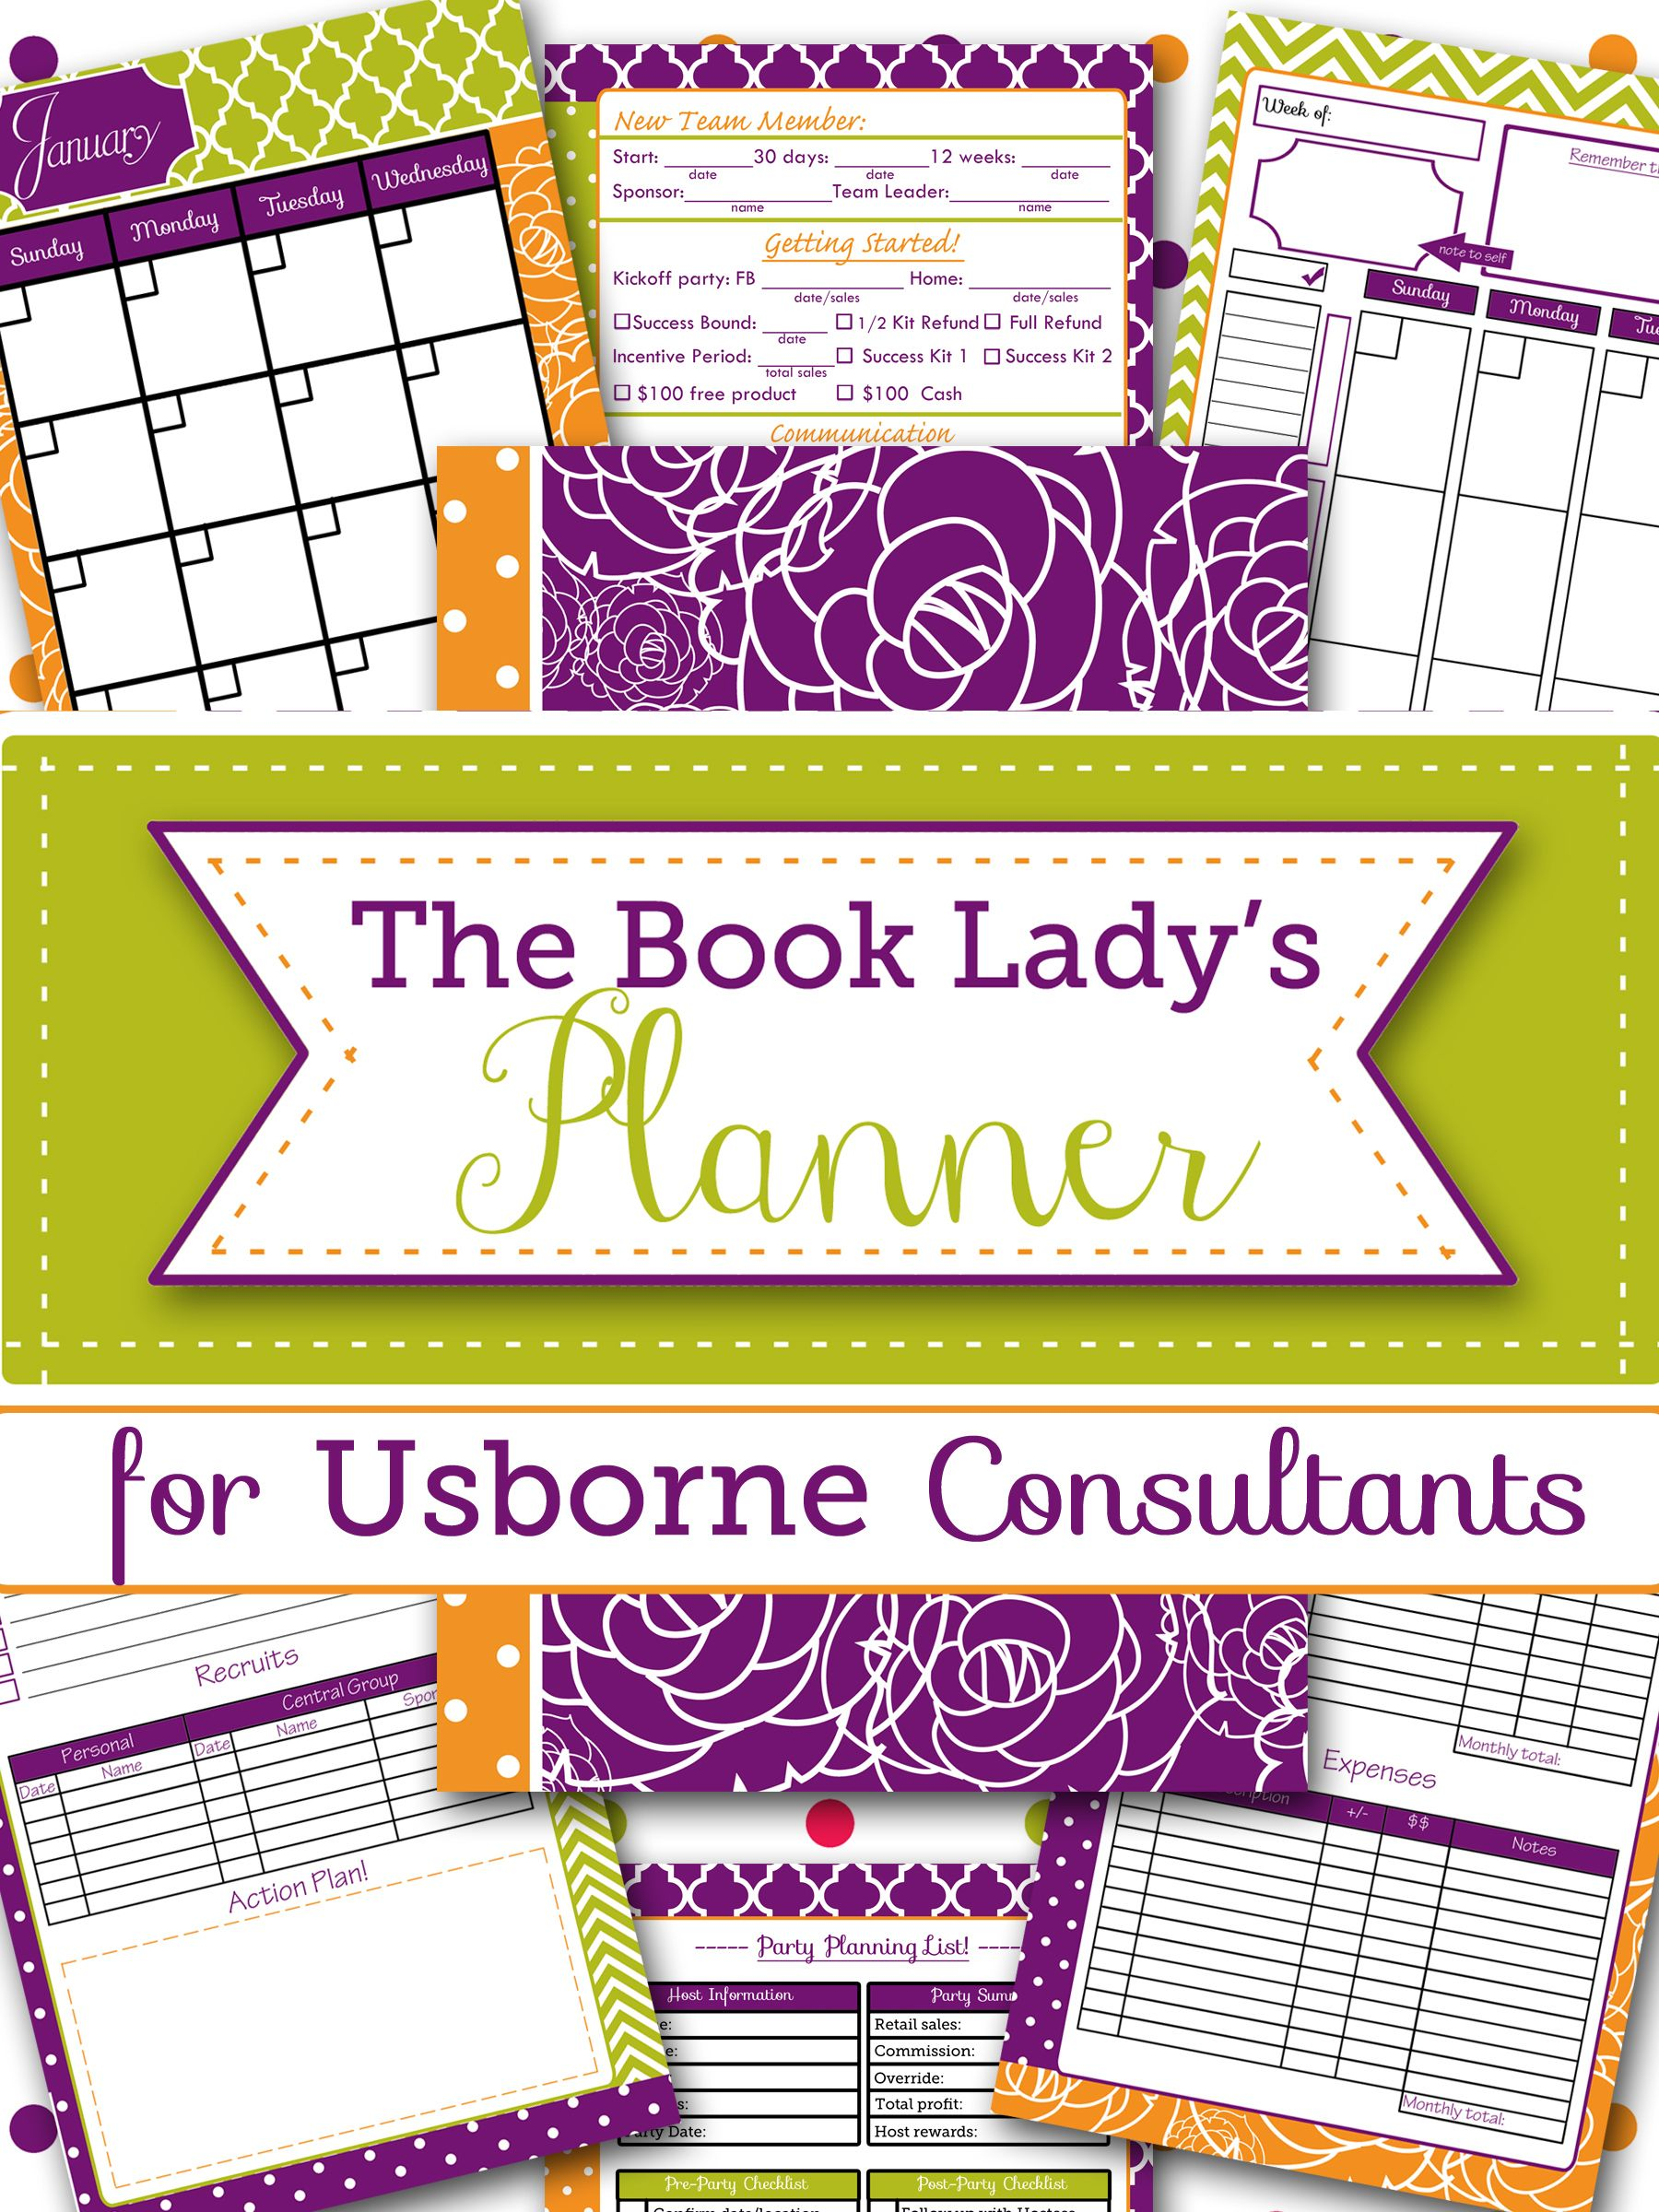 The Book Lady Planner An Organizing Help For Usborne Consultants Usborne Consultant Usborne Books Usborne